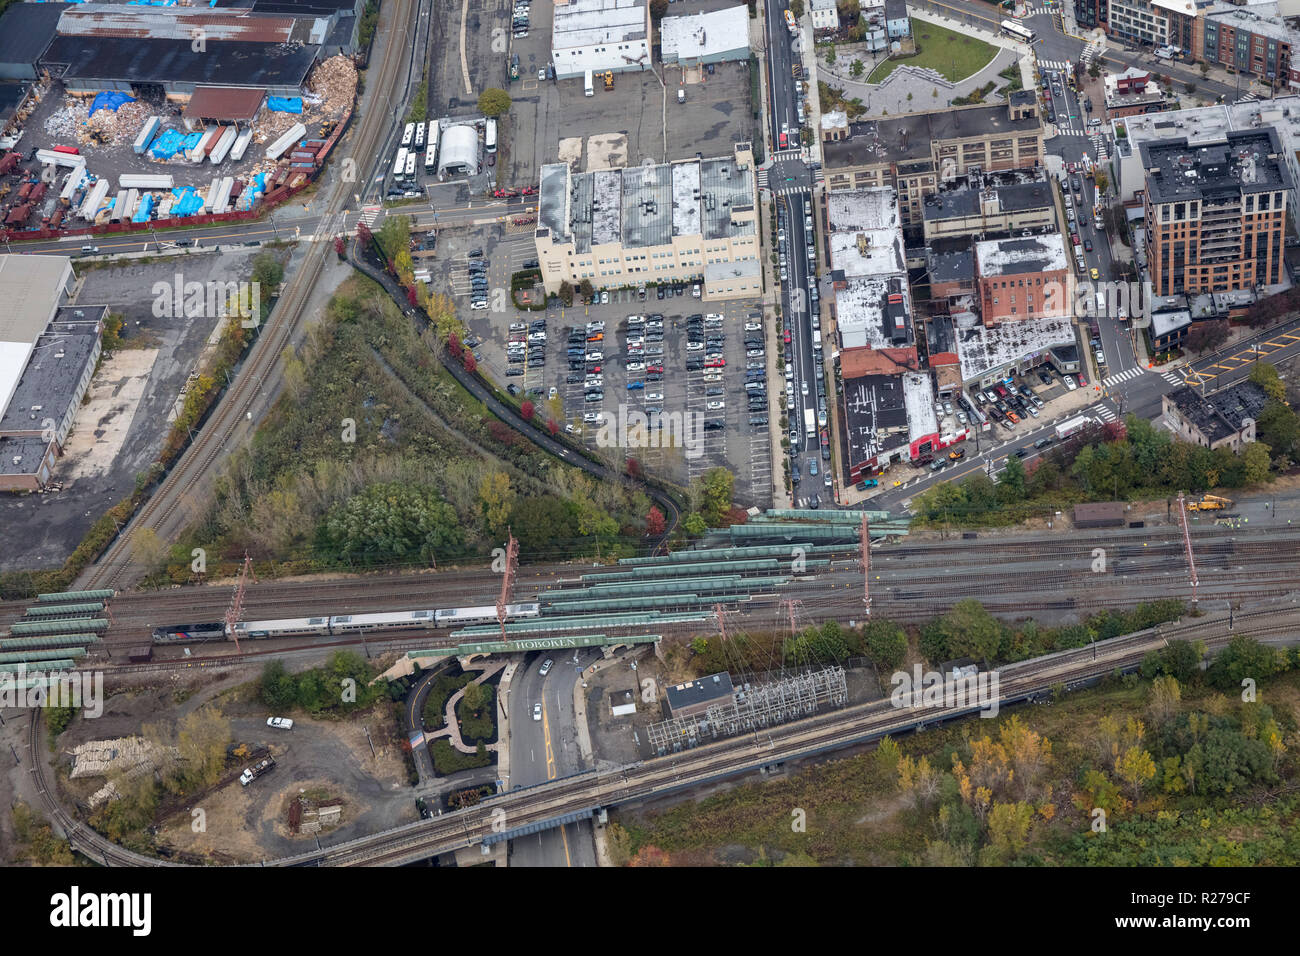 helicopter aerial view of railway line between Hoboken and Jersey City, New Jersey, USA - Stock Image